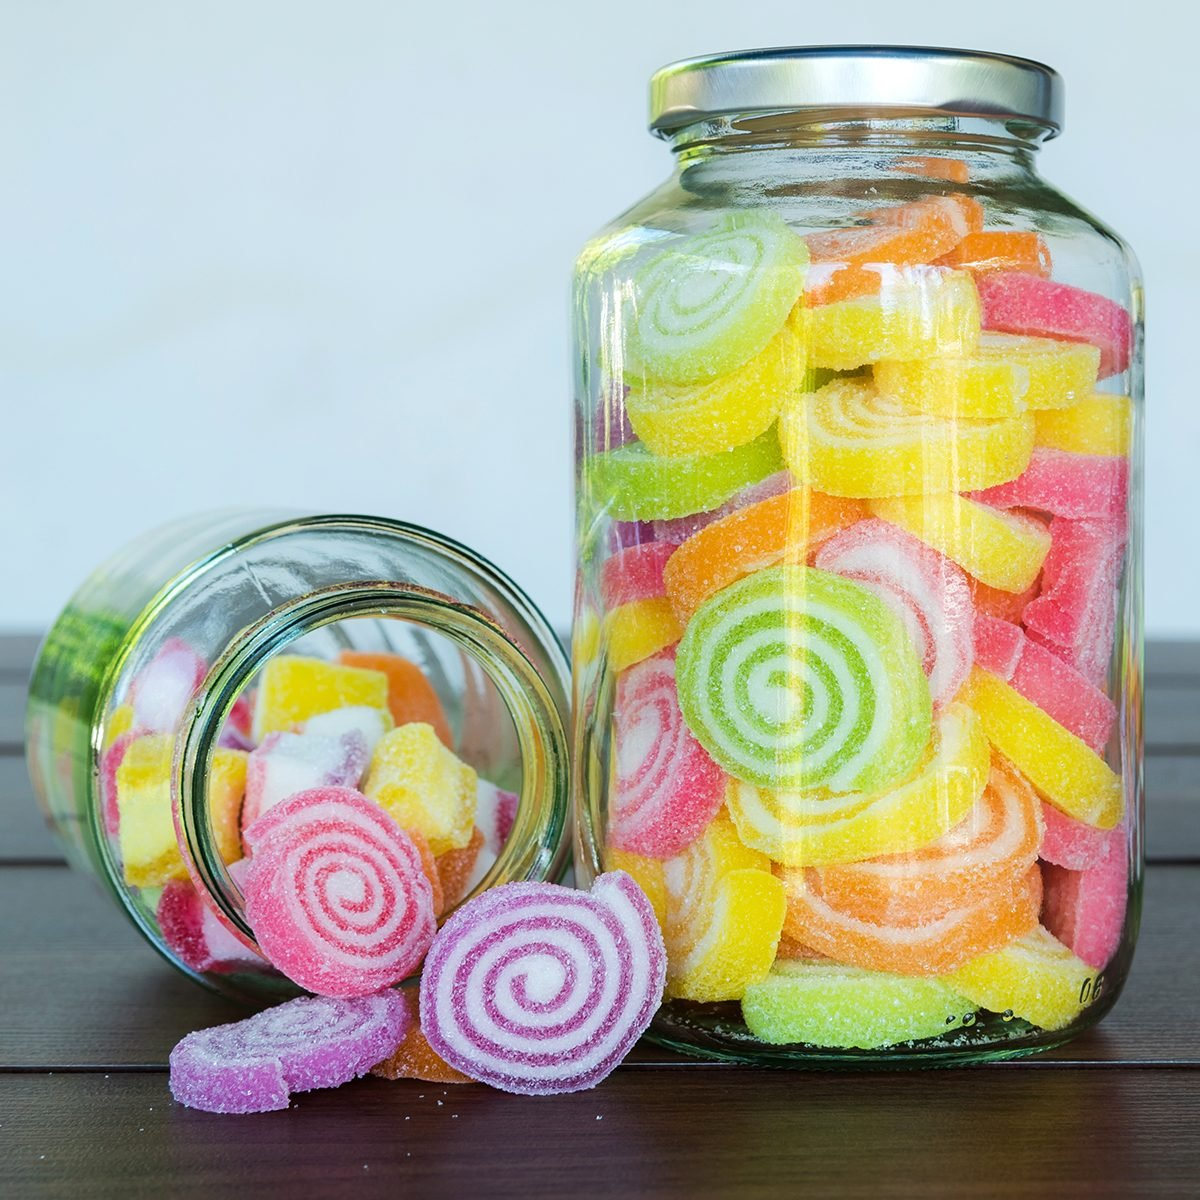 Multi colour candies displayed in glass jars